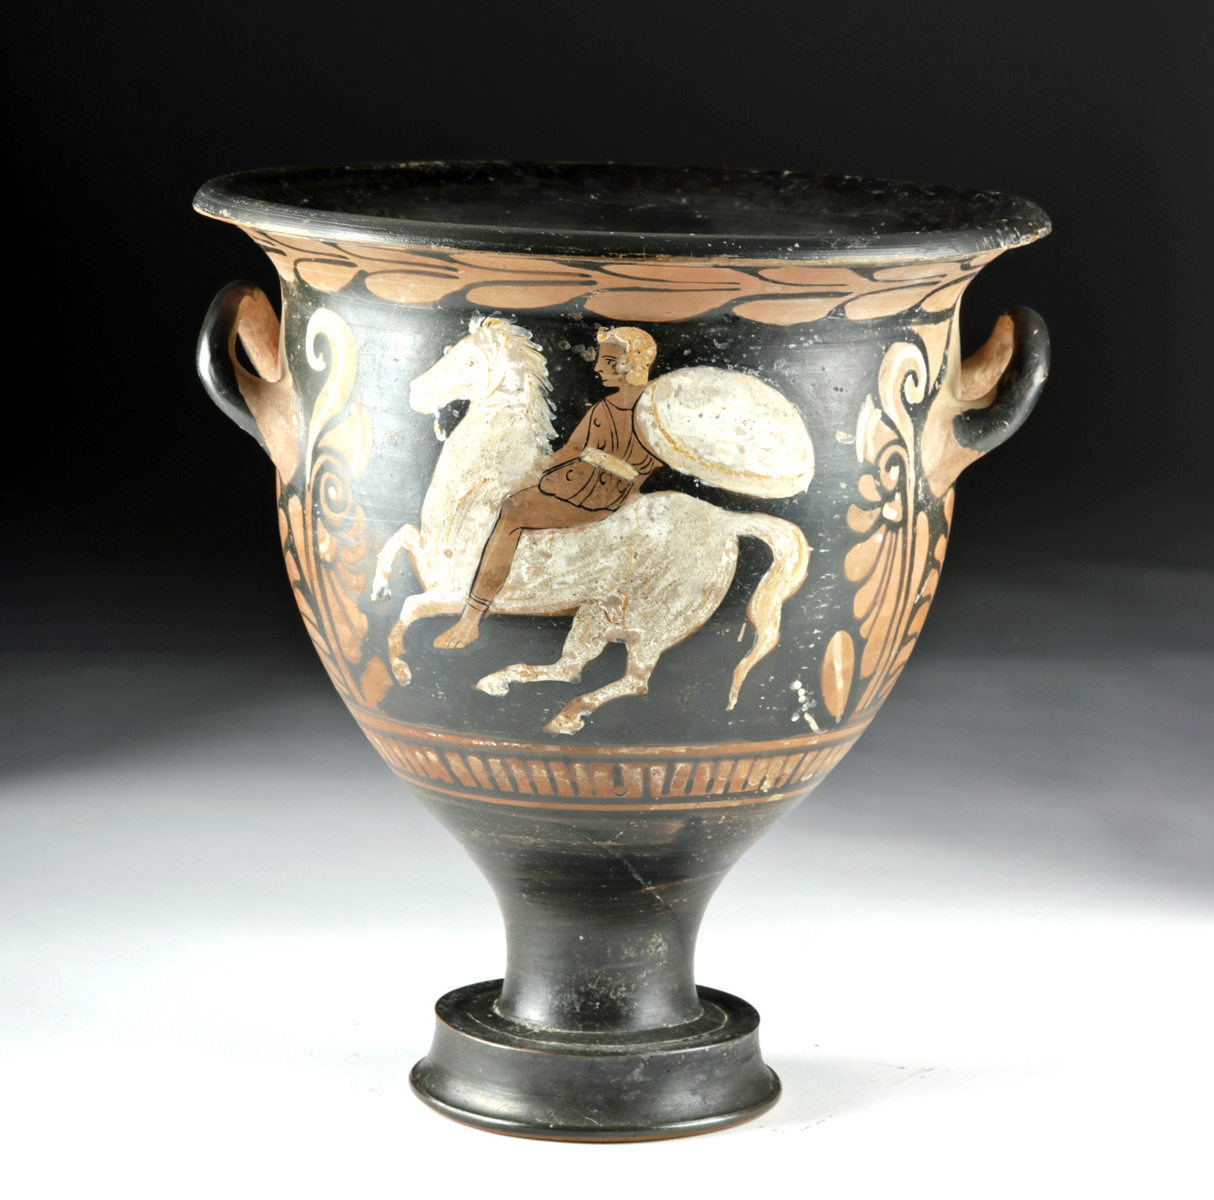 Lot 27a - Campanian Bell Krater, AV Grp Painter, ex-Royal Athena